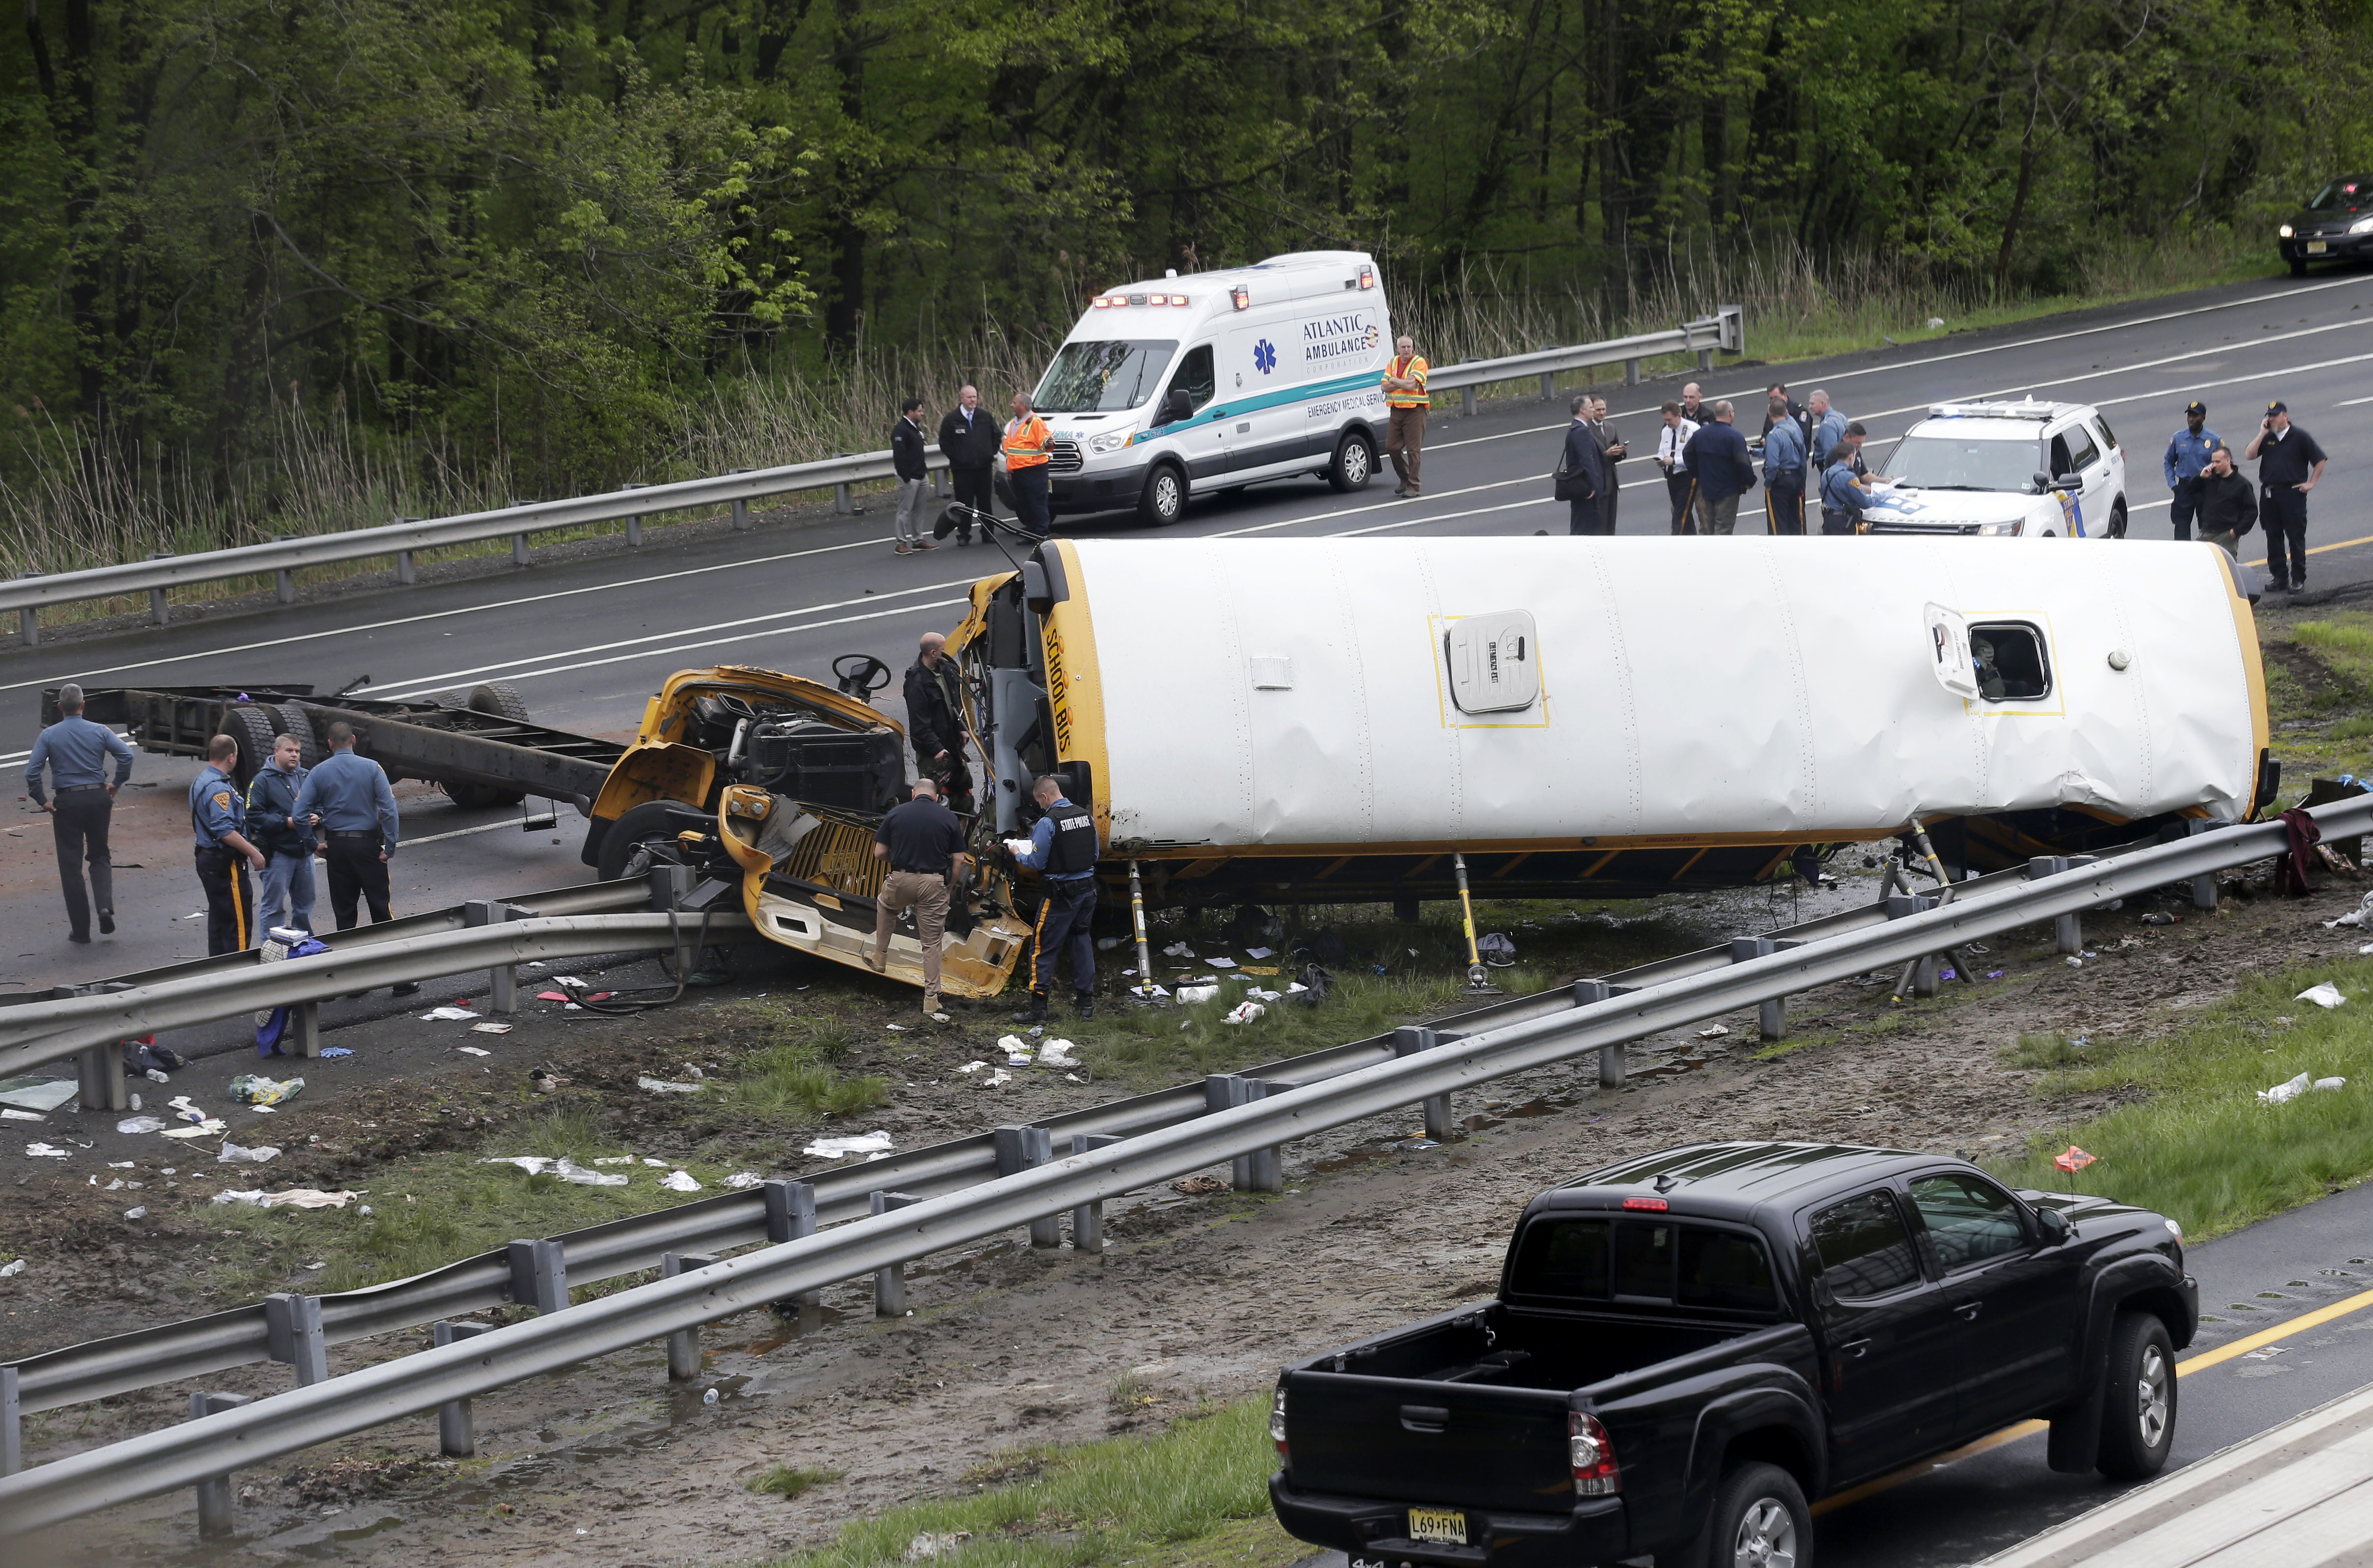 <div class='meta'><div class='origin-logo' data-origin='none'></div><span class='caption-text' data-credit='AP Photo/Seth Wenig'>Emergency personnel work at the scene of a school bus and dump truck collision, injuring multiple people, on Interstate 80 in Mount Olive, N.J., Thursday, May 17, 2018.</span></div>